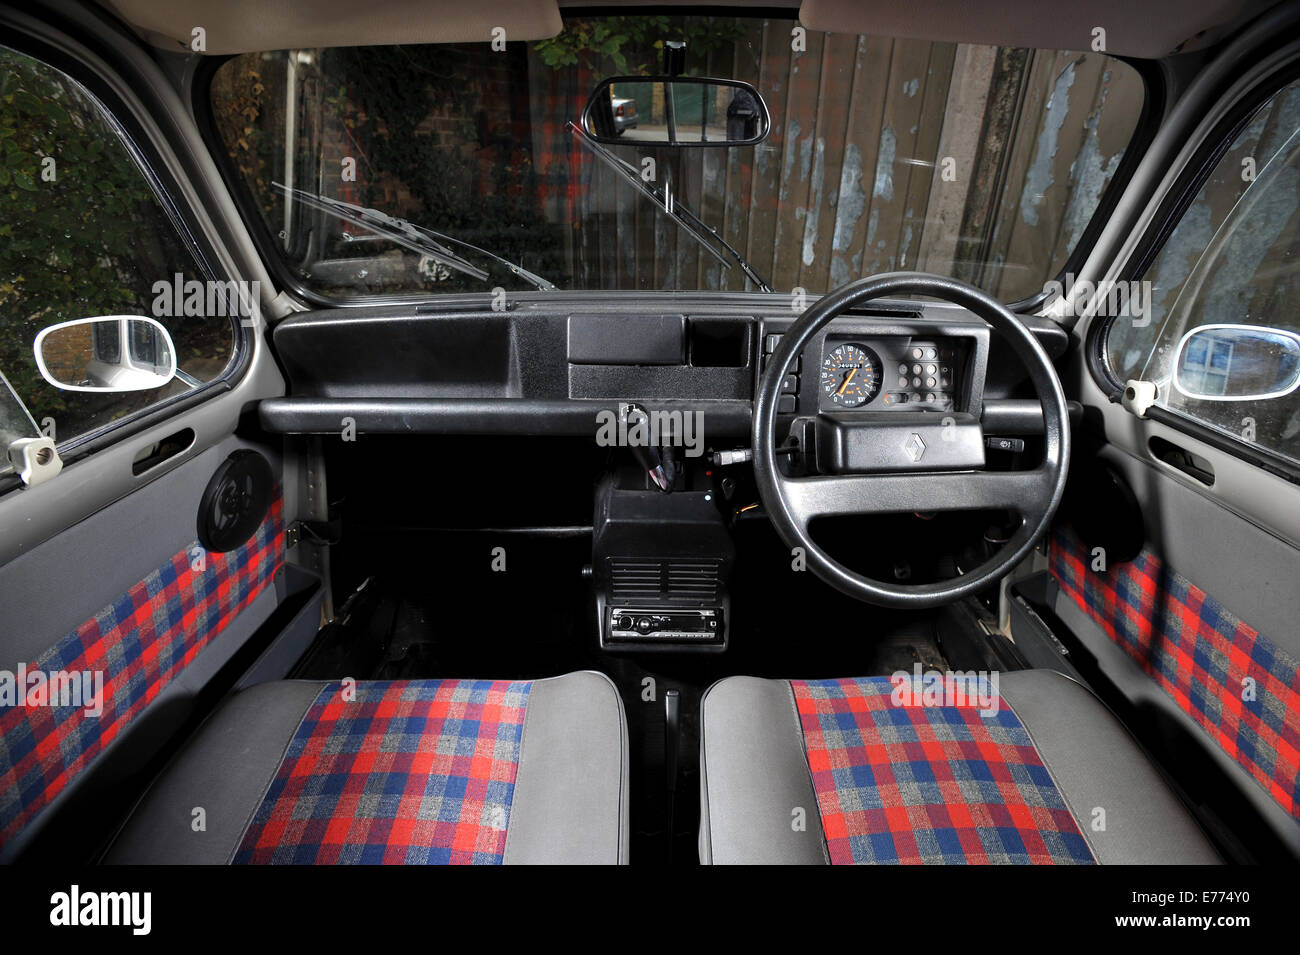 renault 4 classic french small car interior stock photo royalty free image 73301620 alamy. Black Bedroom Furniture Sets. Home Design Ideas